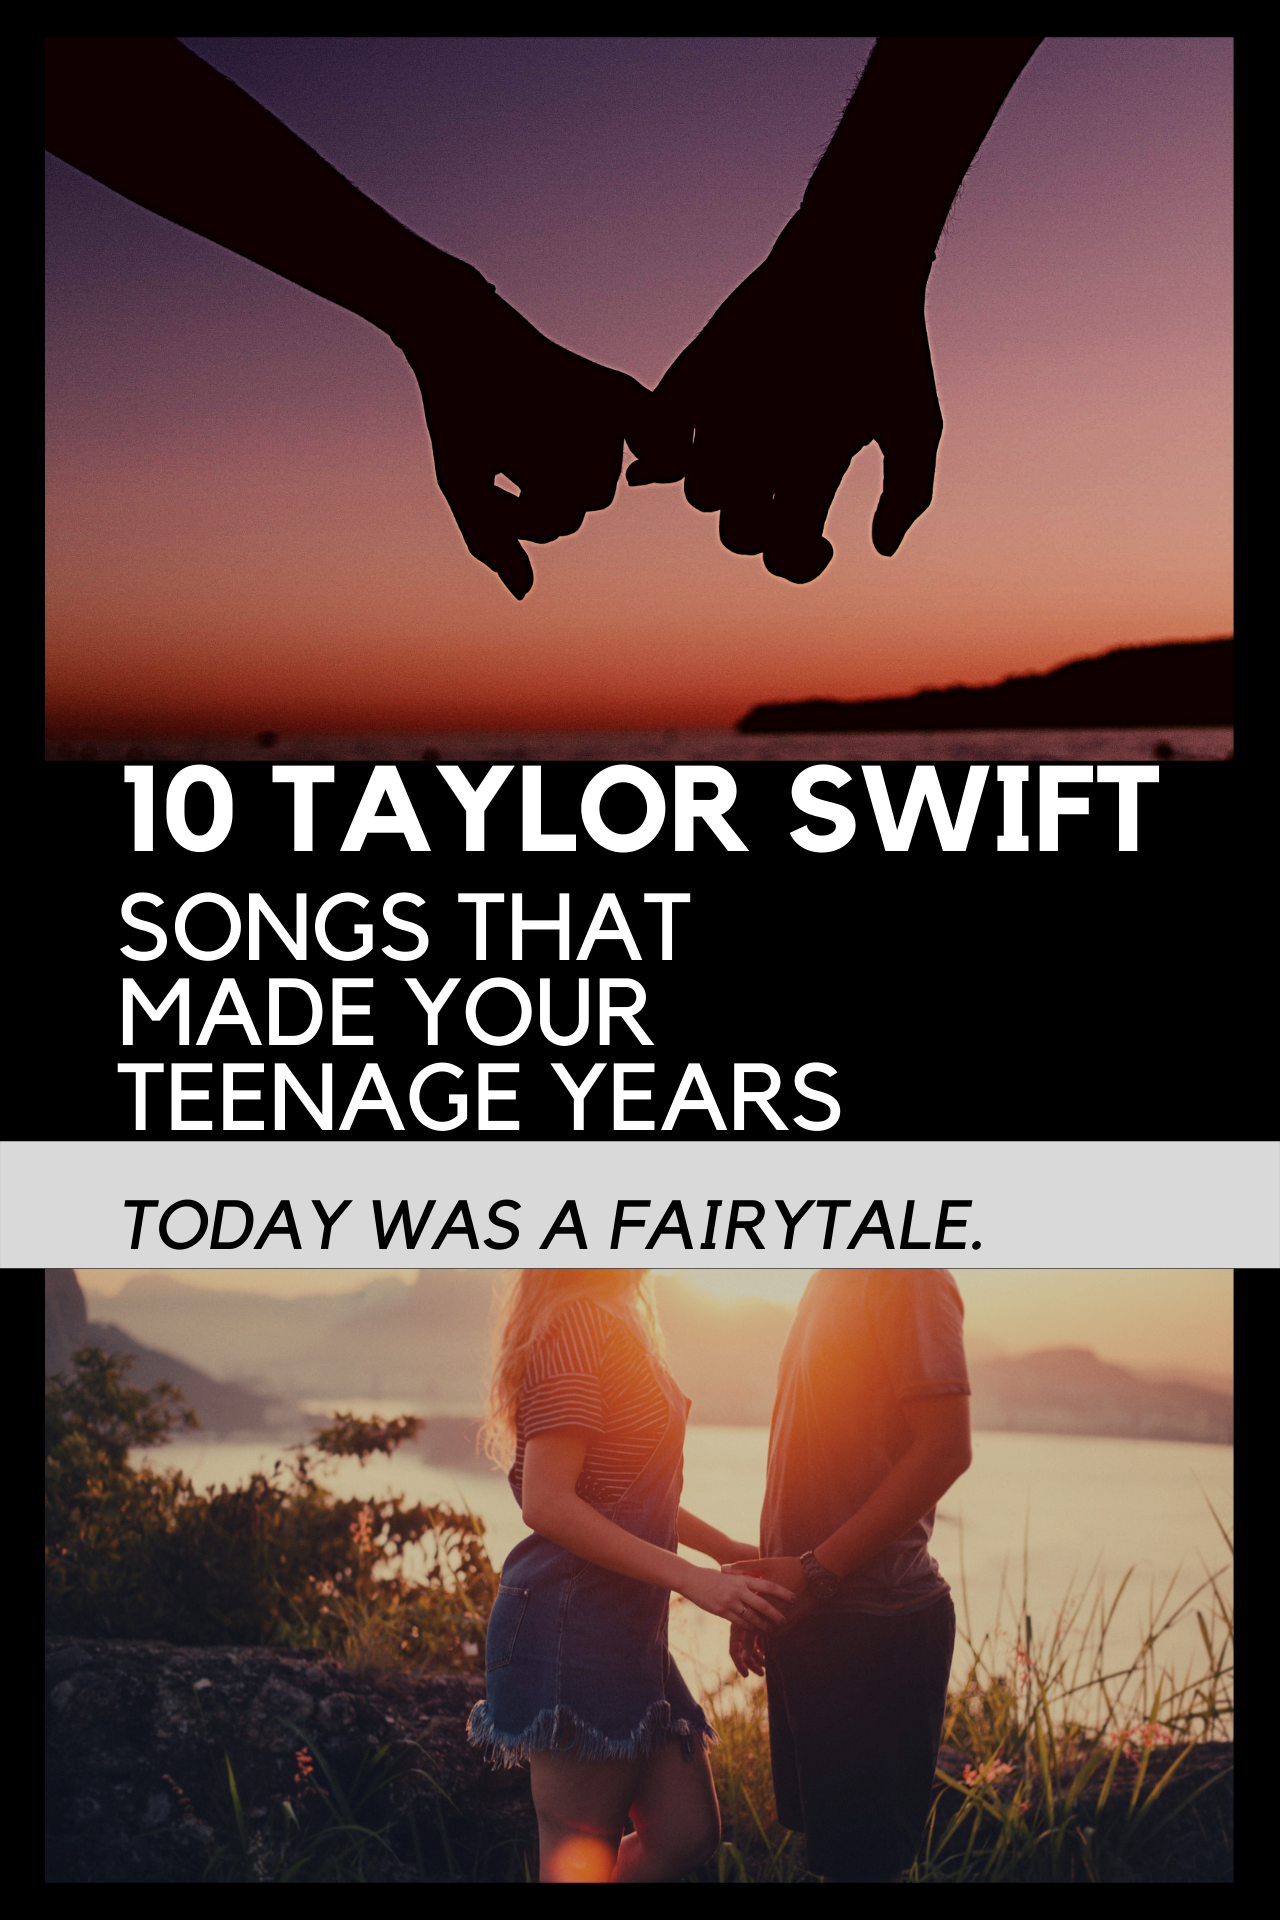 10 Taylor Swift Songs That Made Your Teenage Years